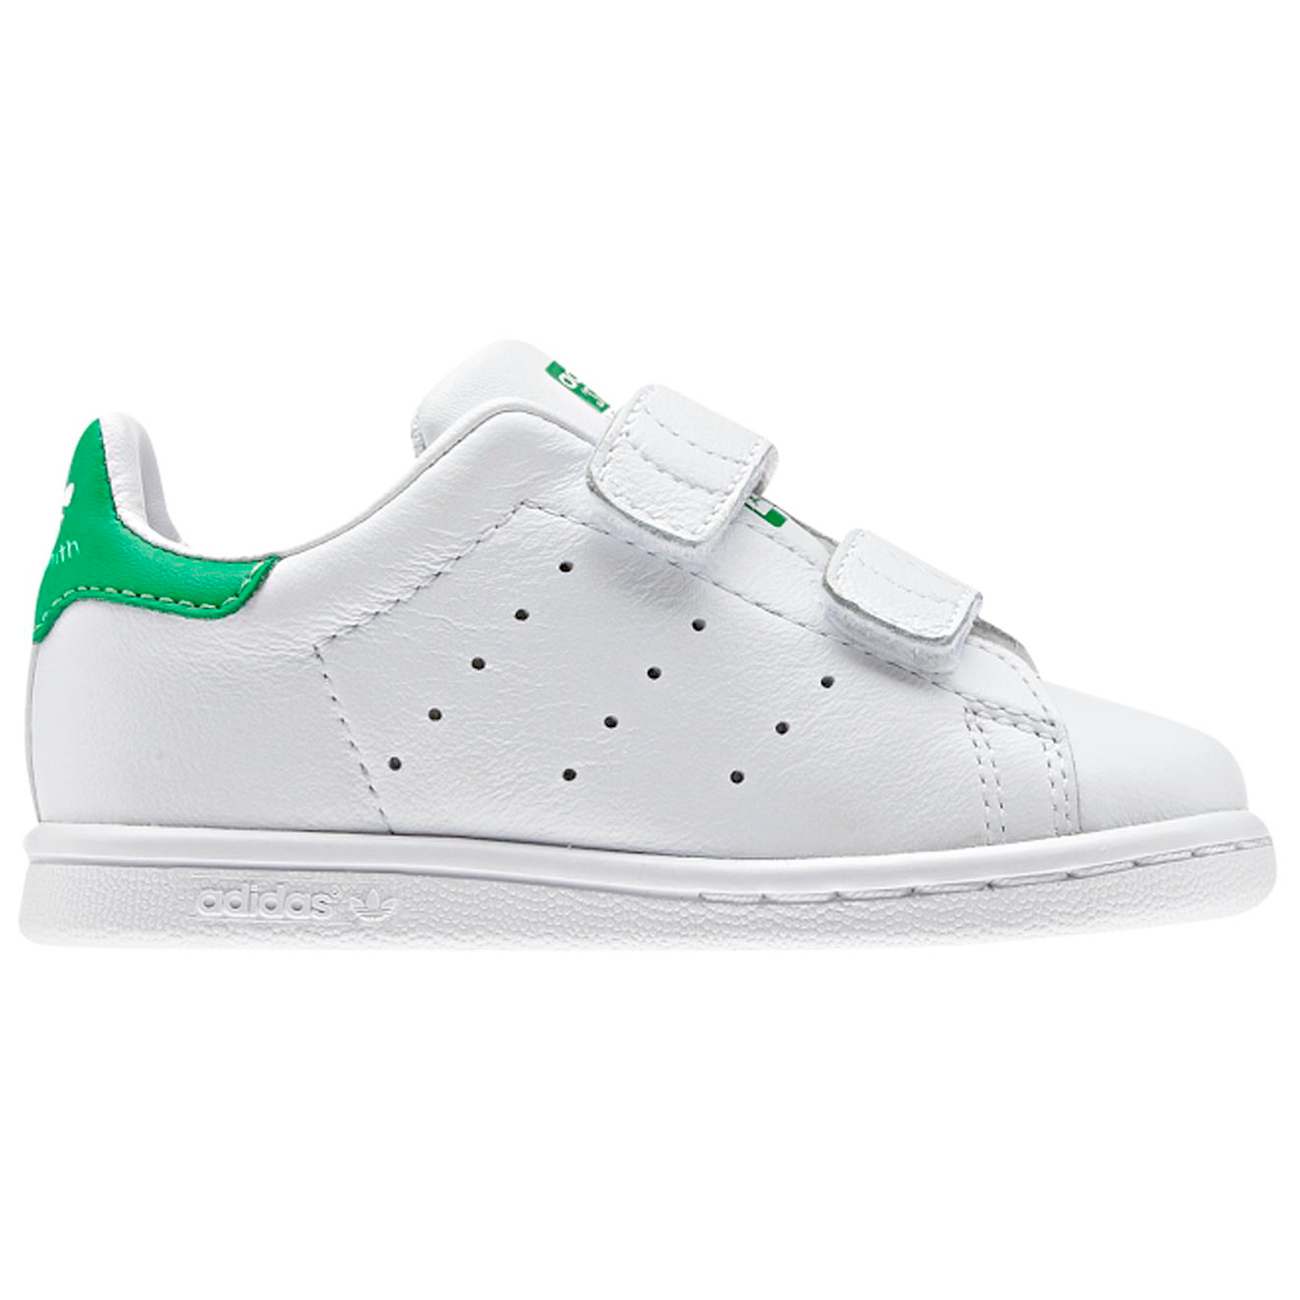 huge discount 13b34 829eb adidas Stan Smith Sneakers White/Green M20609